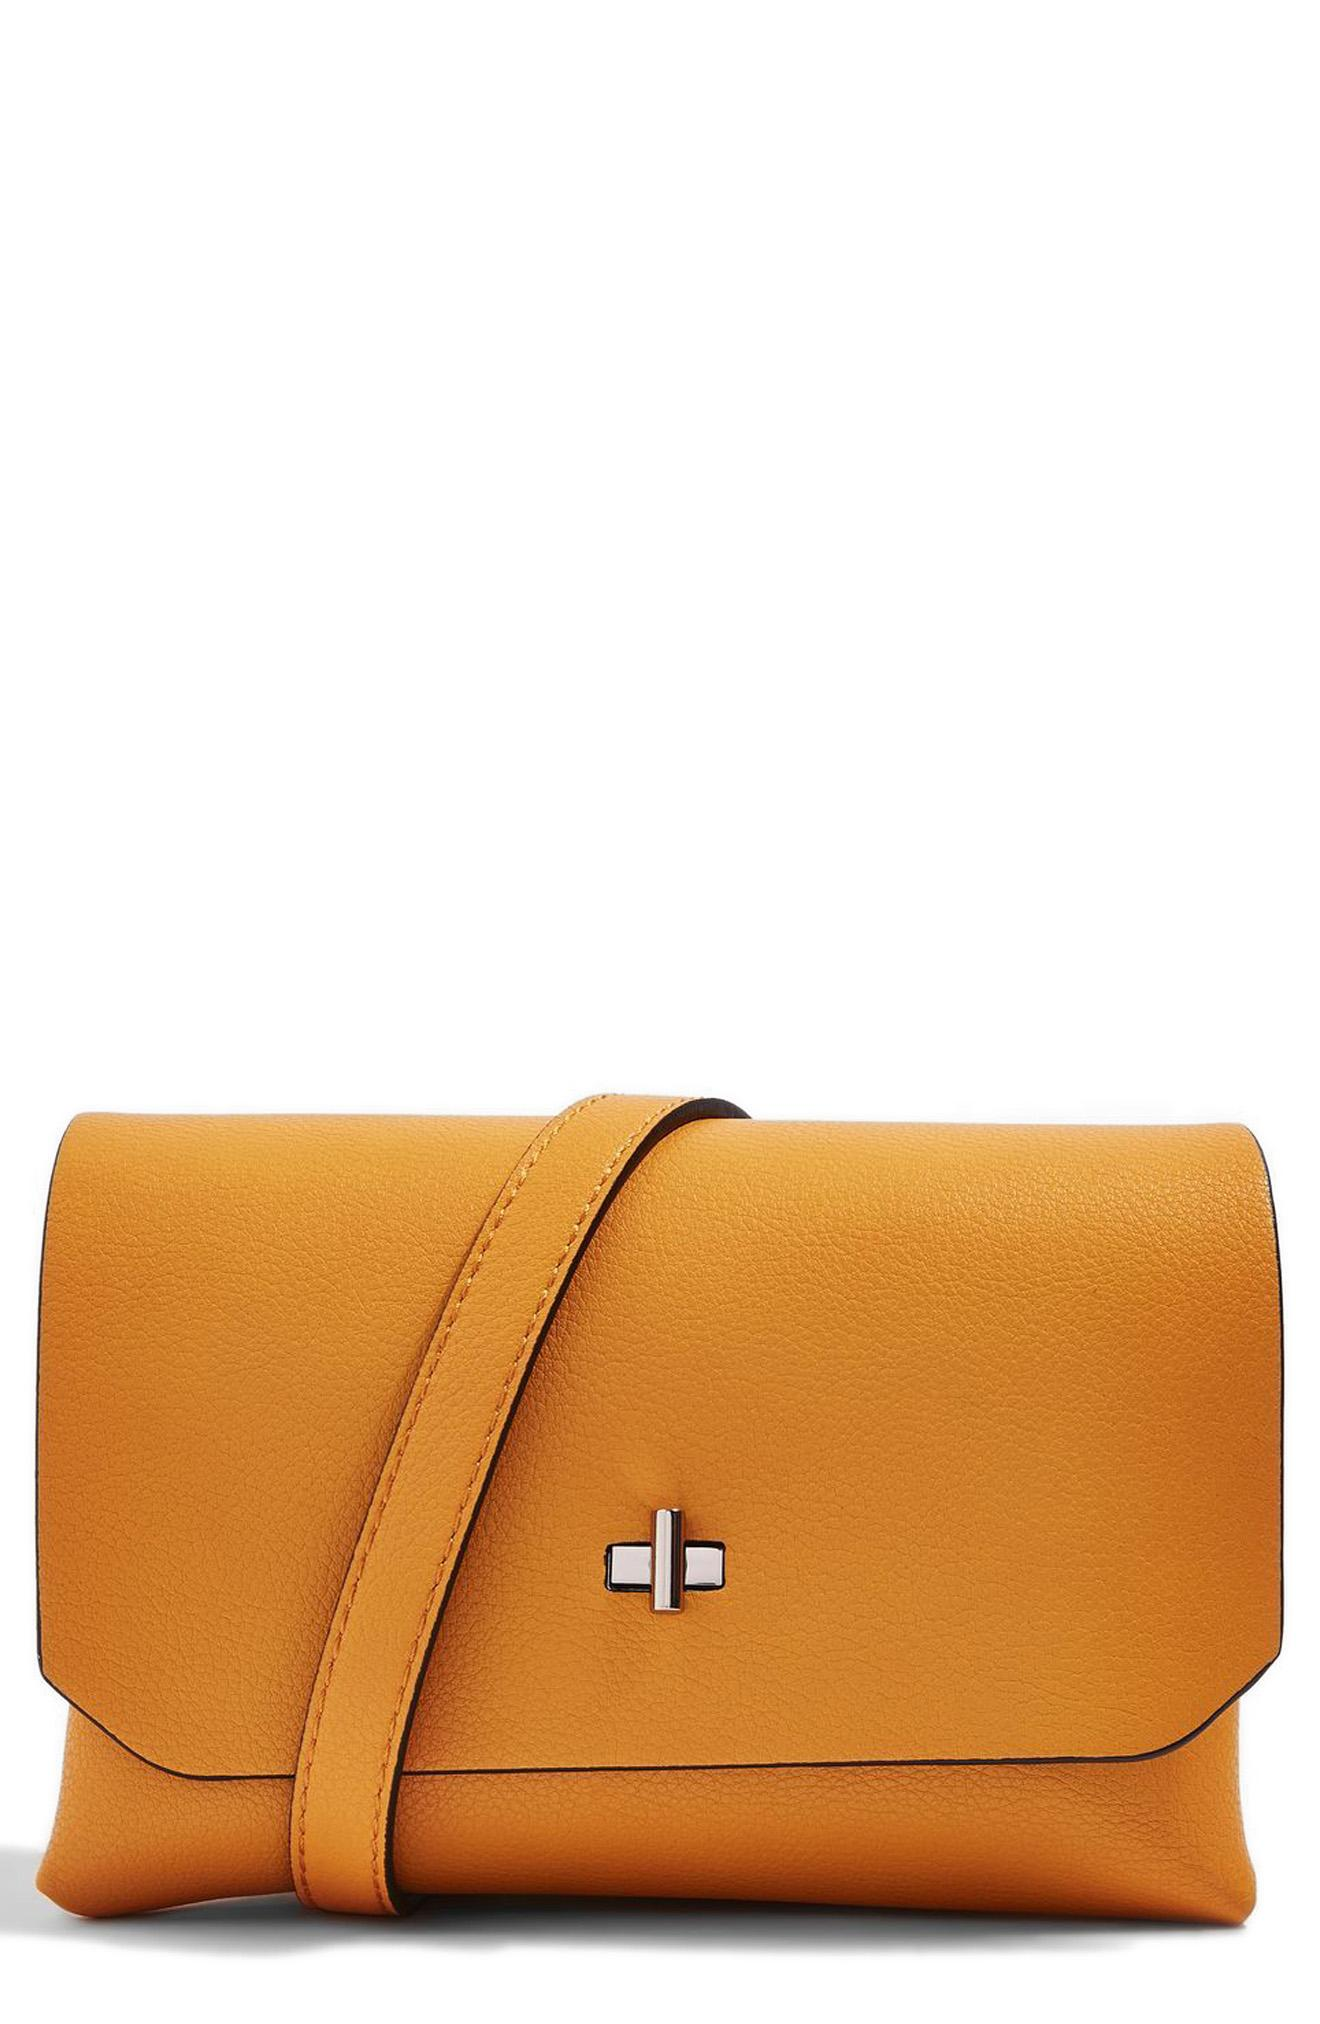 Topshop Otley Faux Leather Crossbody Bag from Nordstrom // Price: $40.00 // (Image: Nordstrom // Nordstrom.com)<p></p>